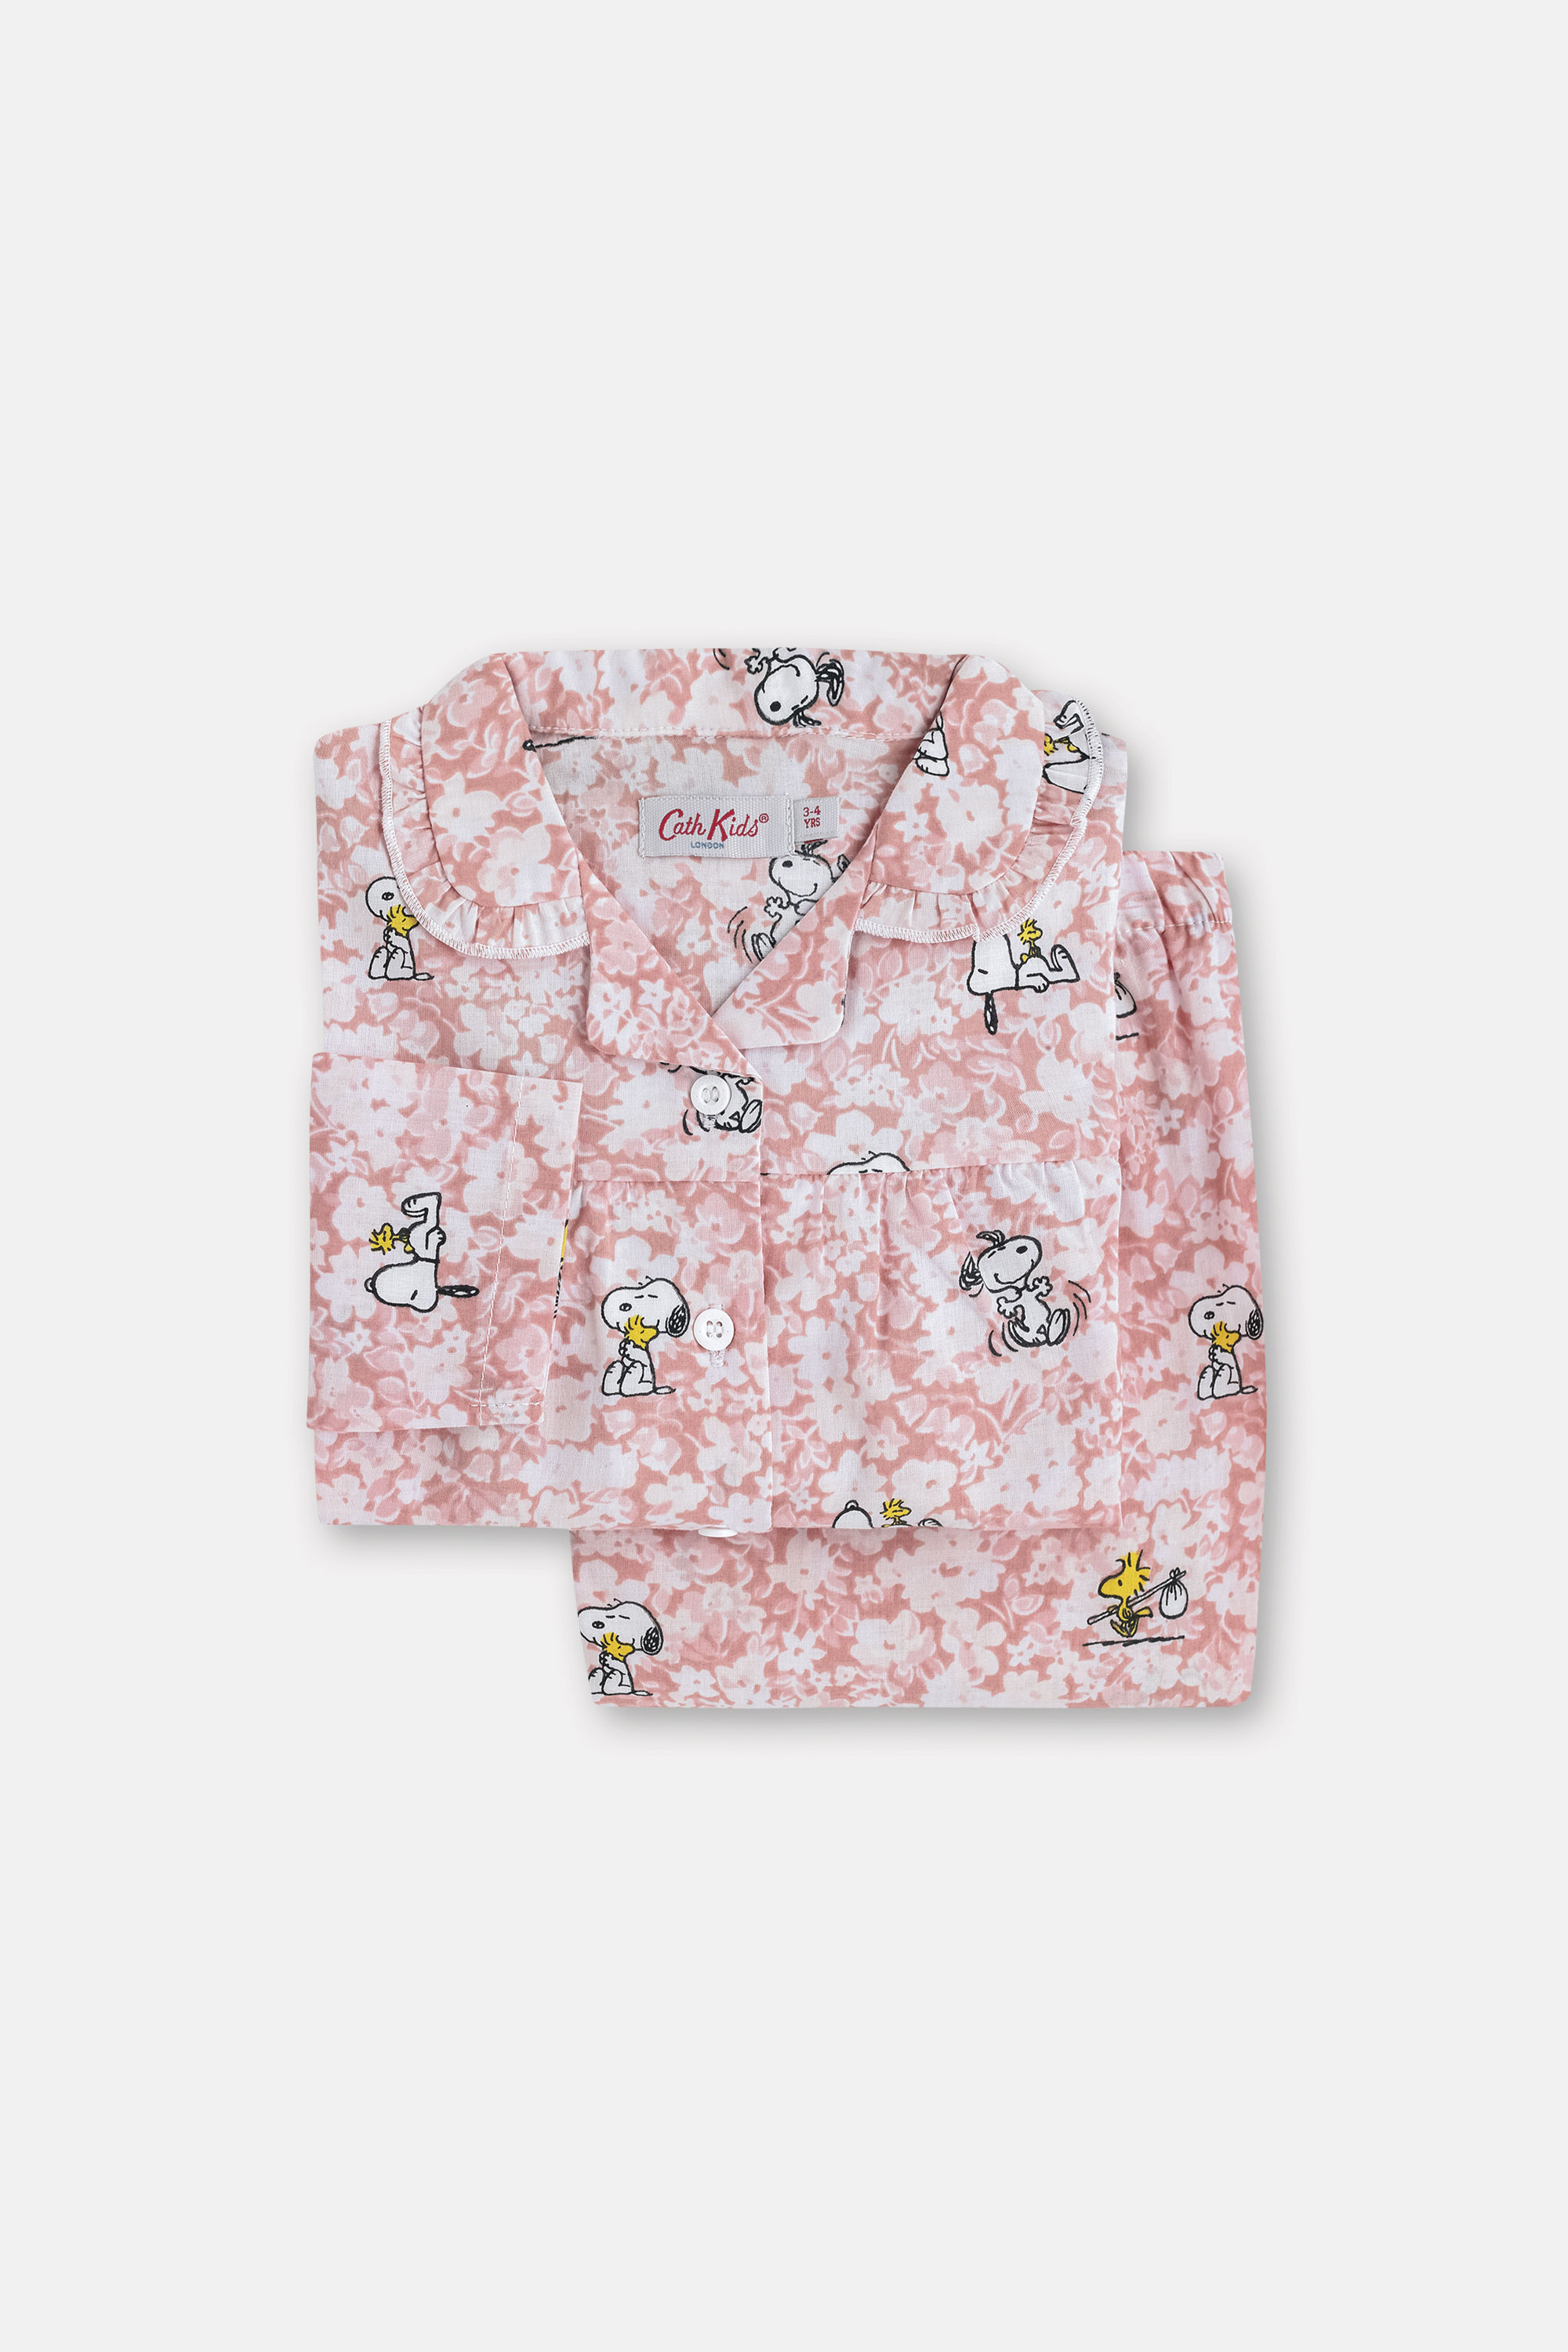 Cath Kidston Kids Woven Pyjamas in Washed Pink, Snoopy, 100% Cotton, 3-4 yr